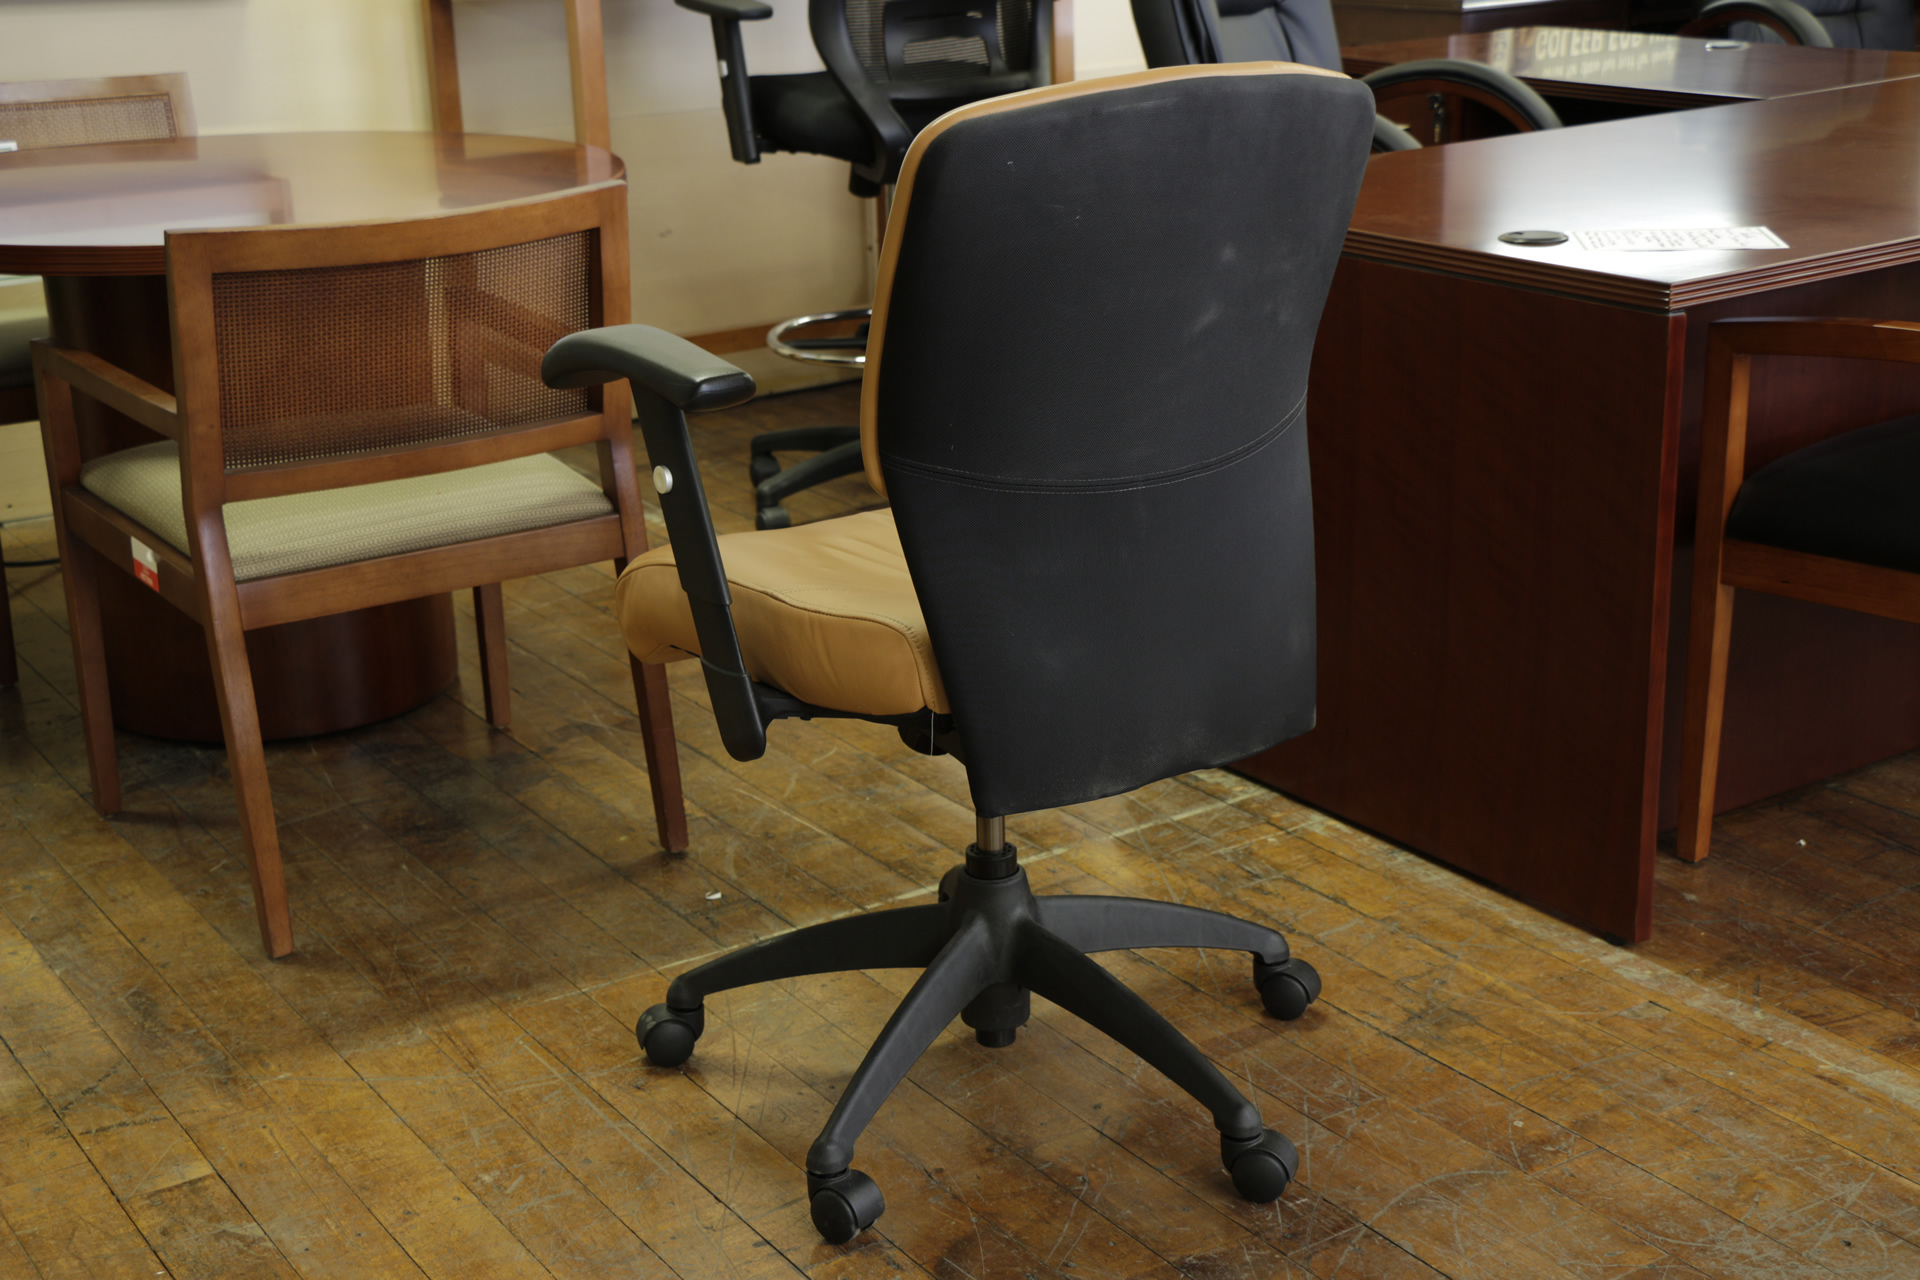 peartreeofficefurniture_peartreeofficefurniture_mg_3820.jpg